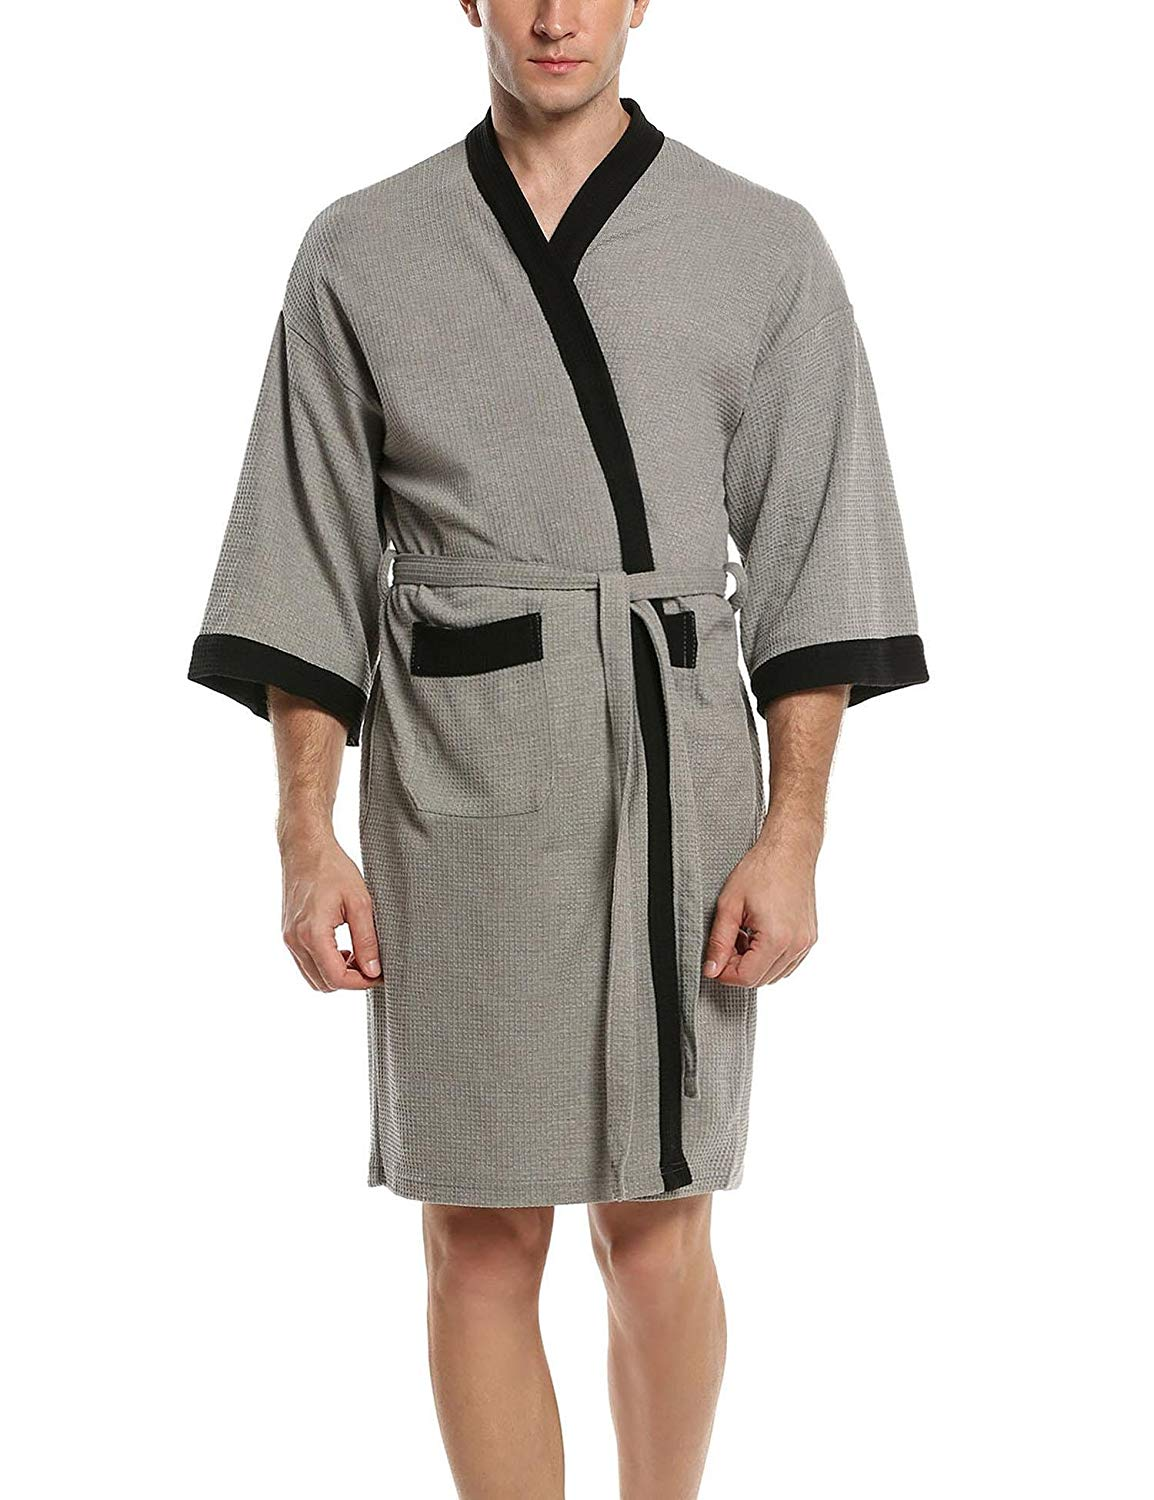 2b3ecf9865 Get Quotations · MAXMODA Men s Waffle Kimono Robes Spa Bathrobe Terry Cloth  Sleep Robe ...